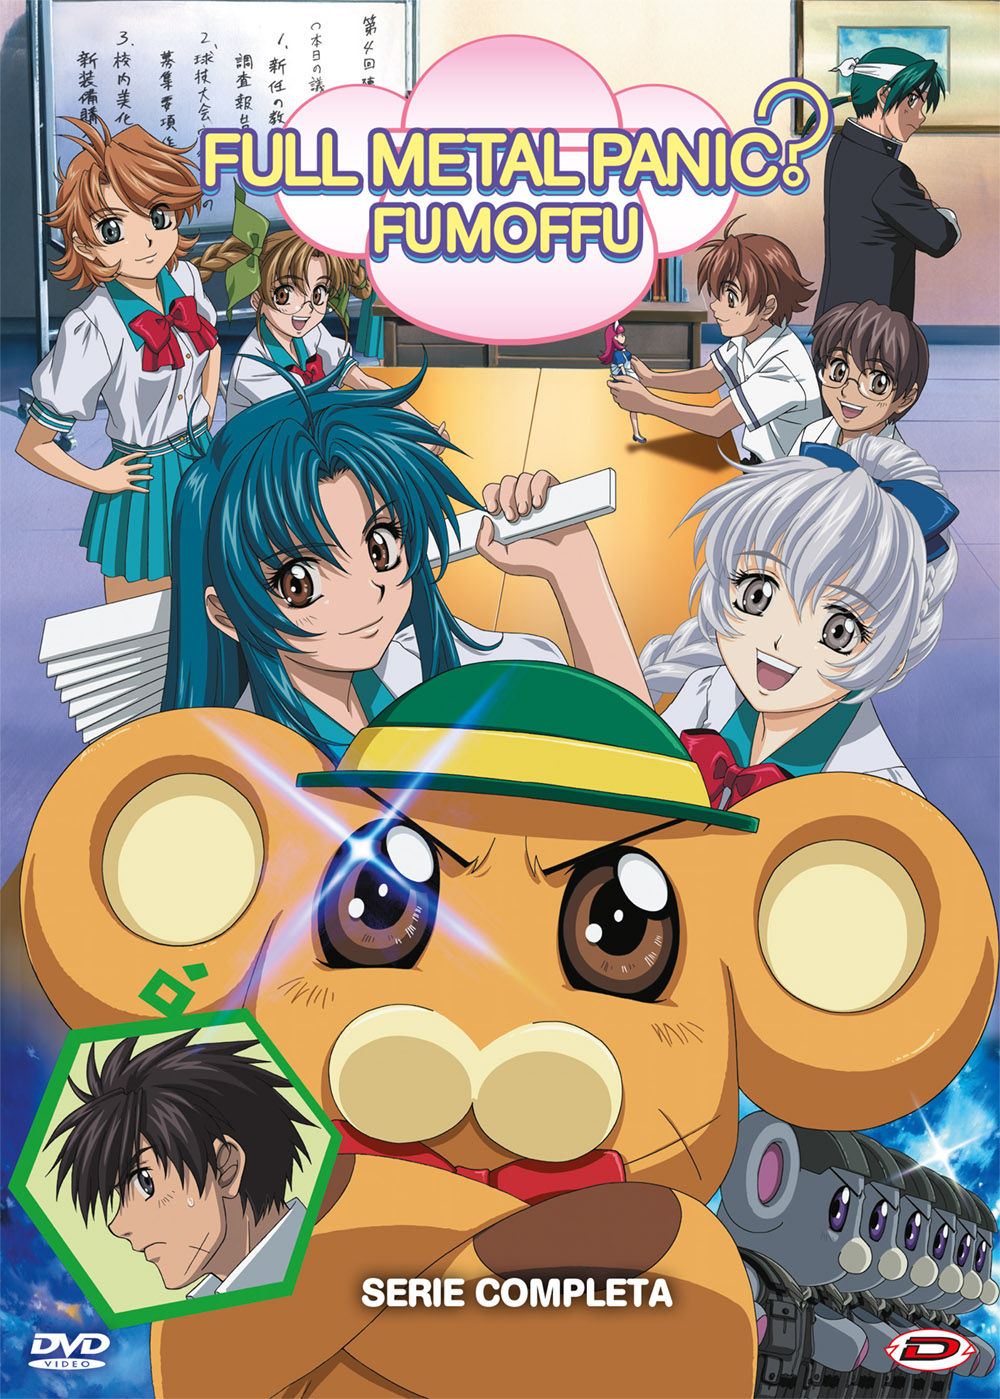 COF.FULL METAL PANIC? FUMOFFU - THE COMPLETE SERIES (EPS 01-12) (3 DVD) (DVD)